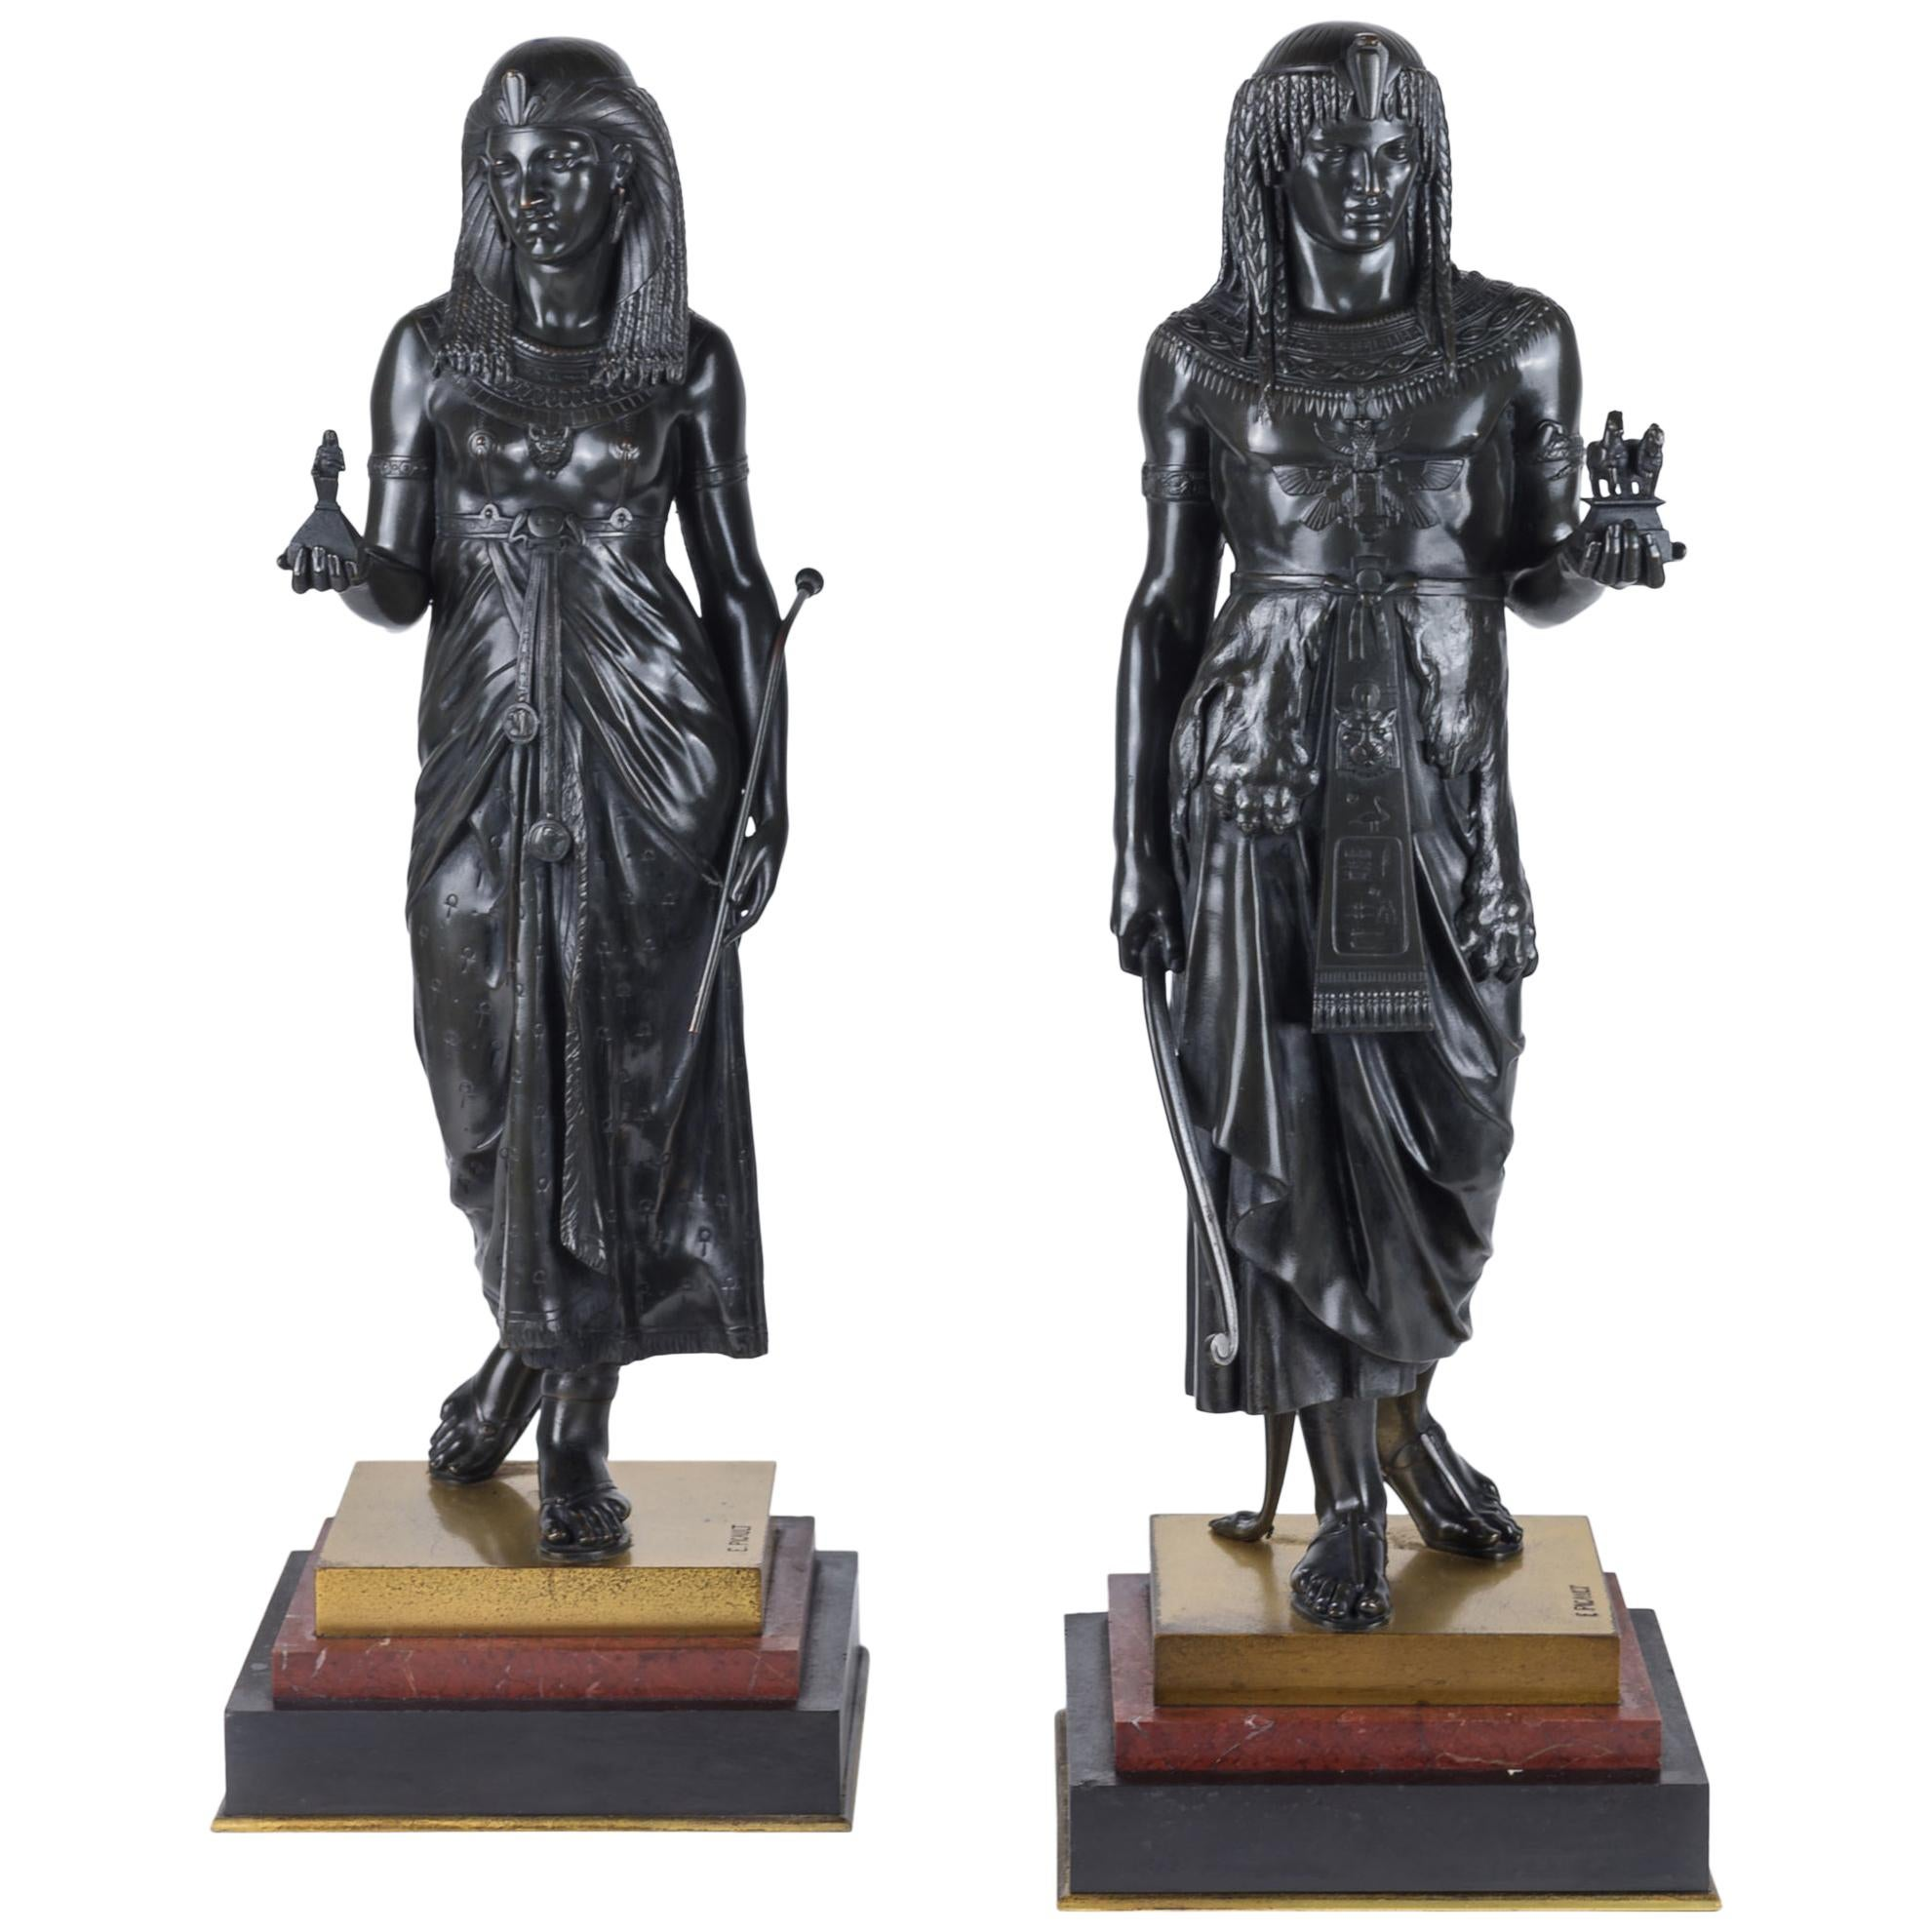 19th Century Pair of Patinated Bronze Figural Sculpture by E. Picault